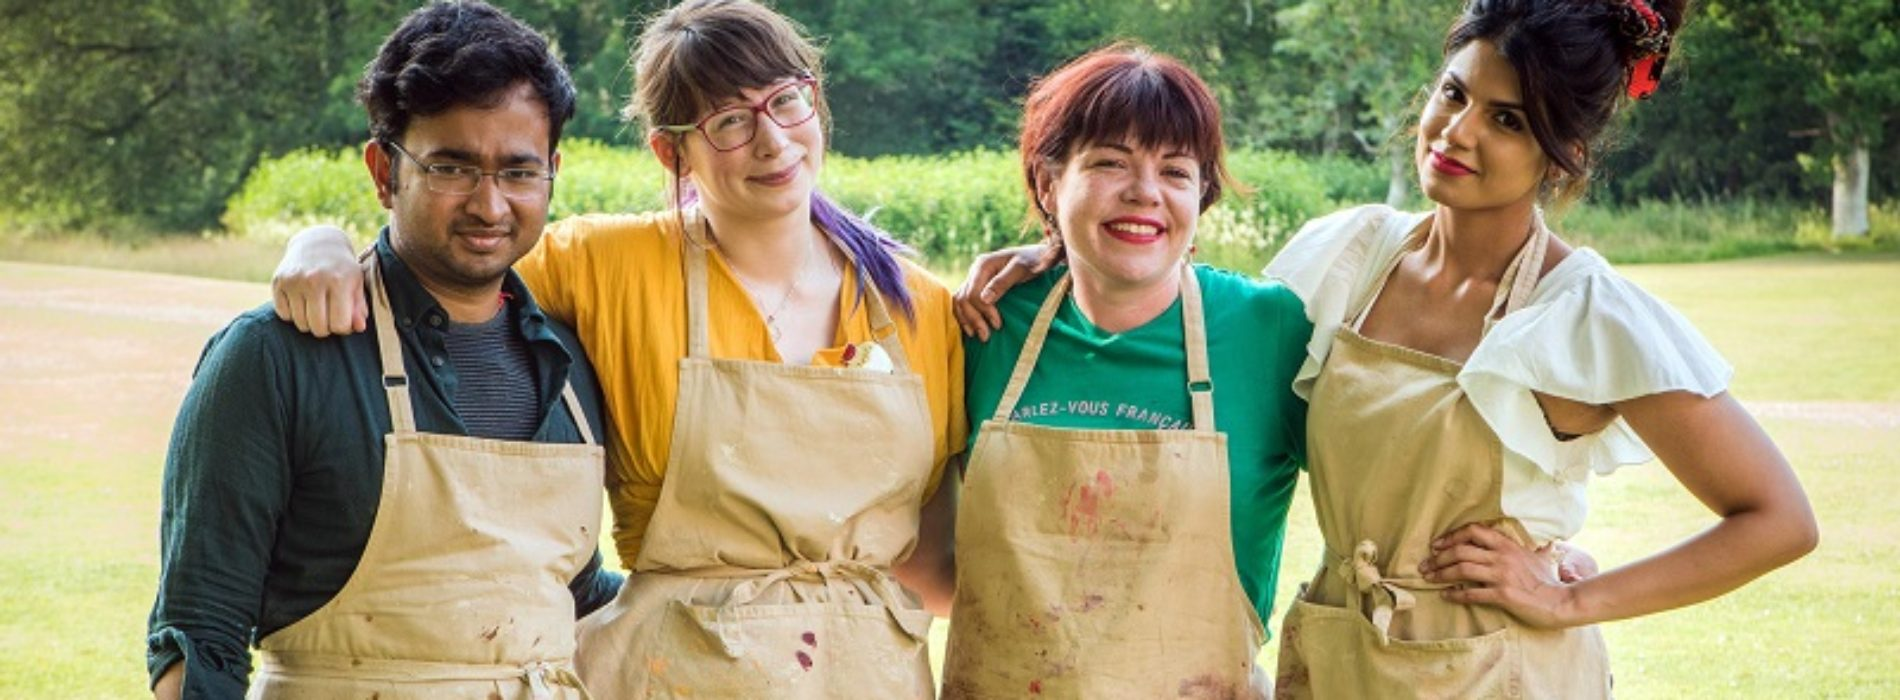 Great British Bake Off: were you pleased that Briony's disability wasn't mentioned?